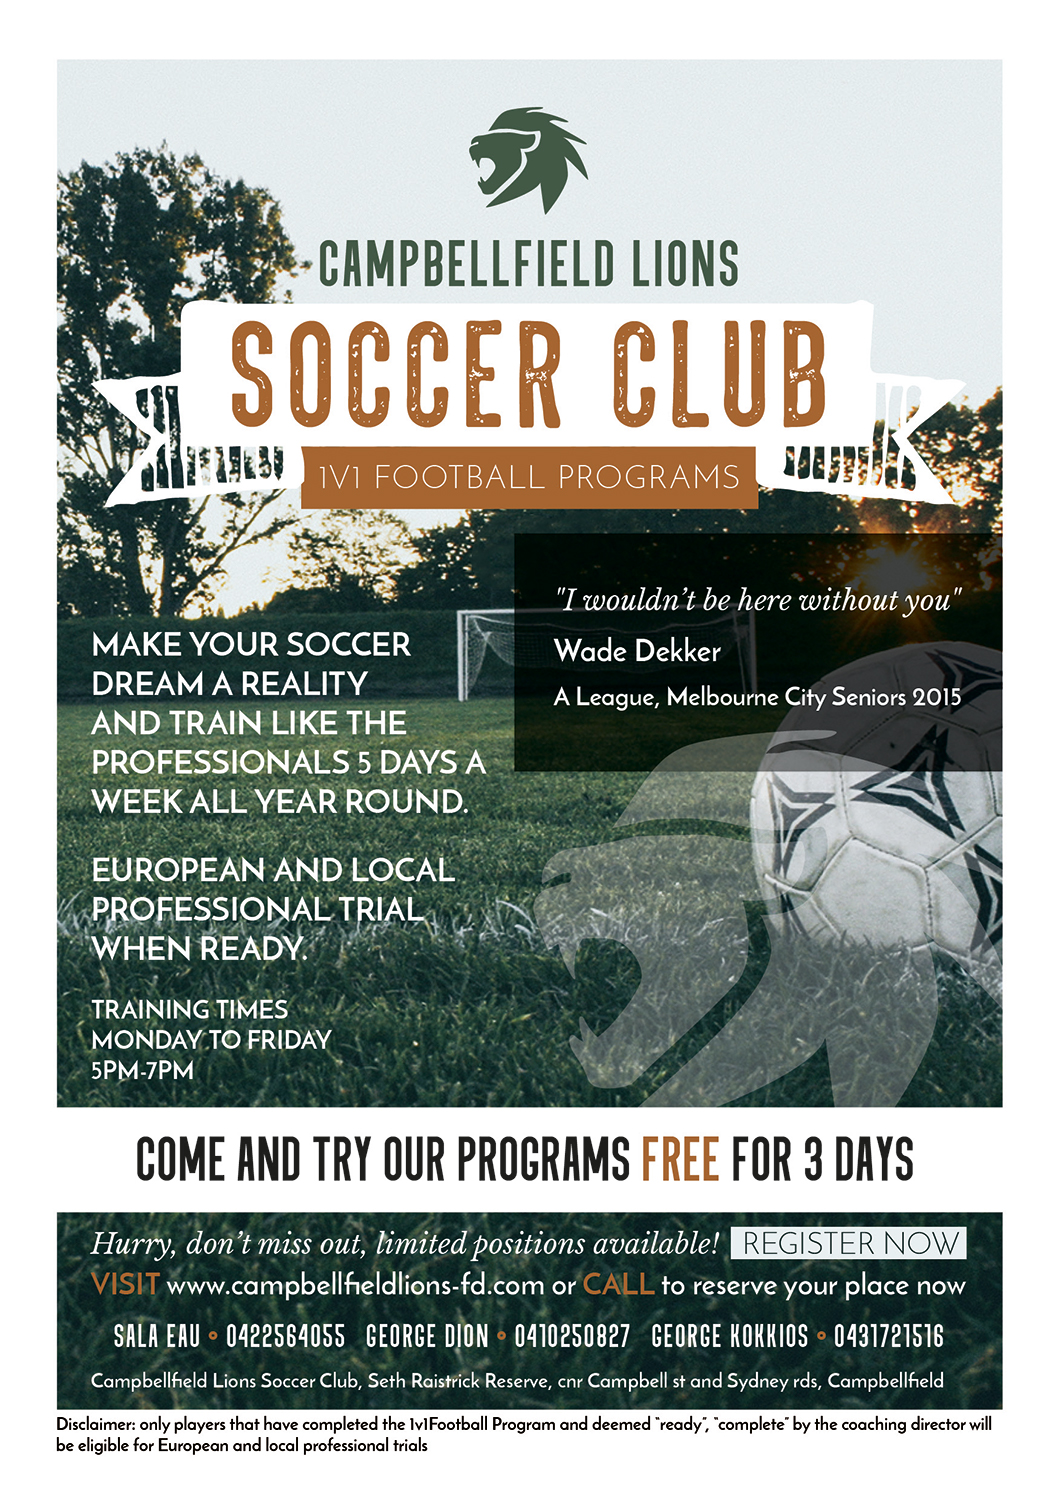 professional modern club flyer design for 1v1 football programs